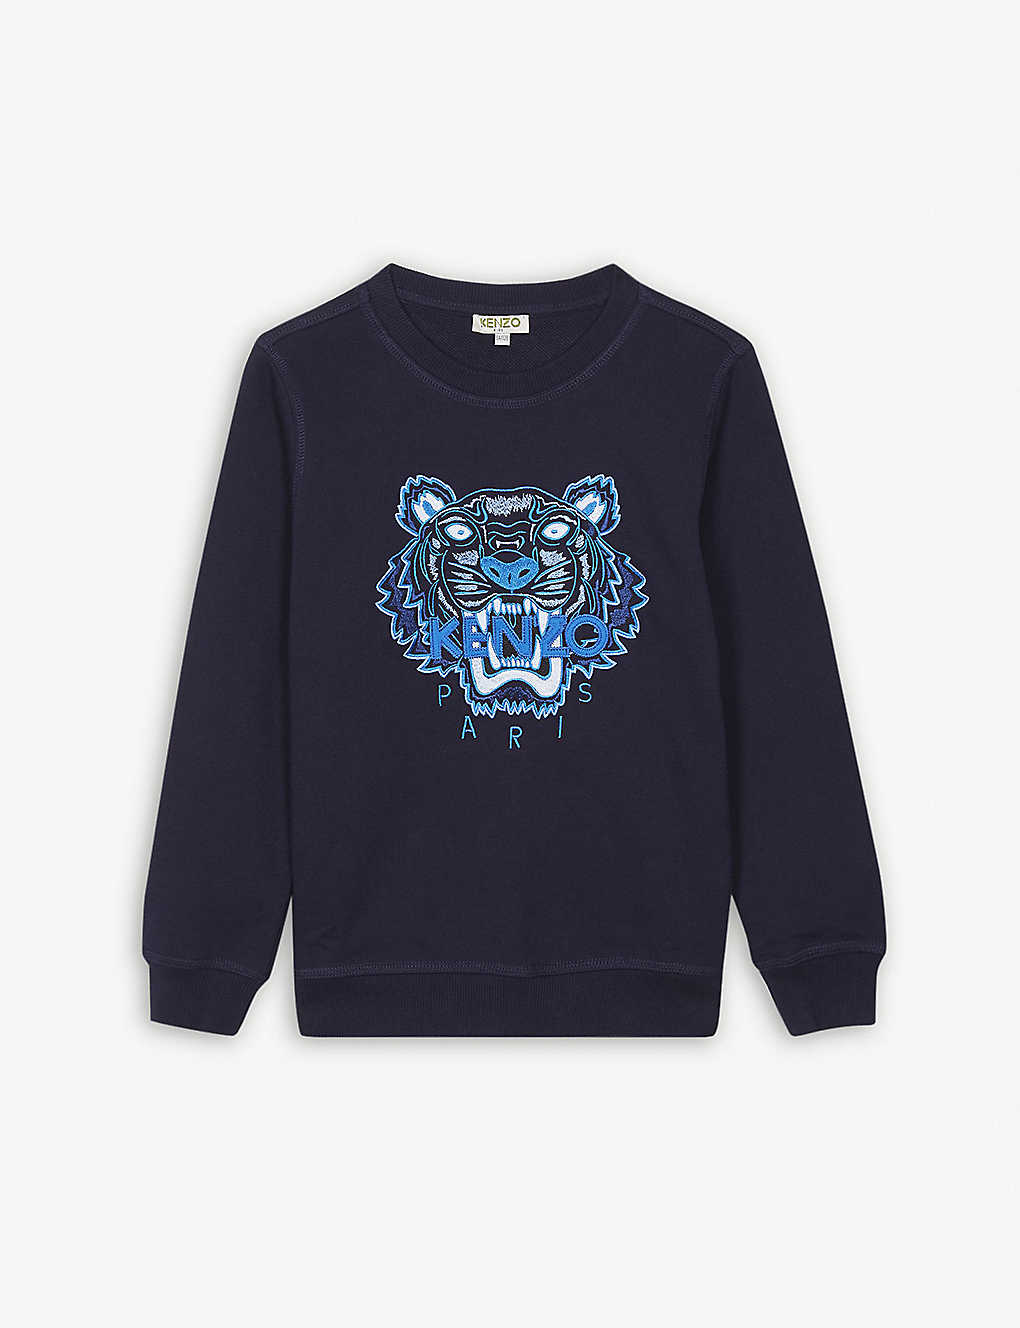 668d7875 KENZO - Kenzo Tiger Embroidered Jumper 4-16 years | Selfridges.com